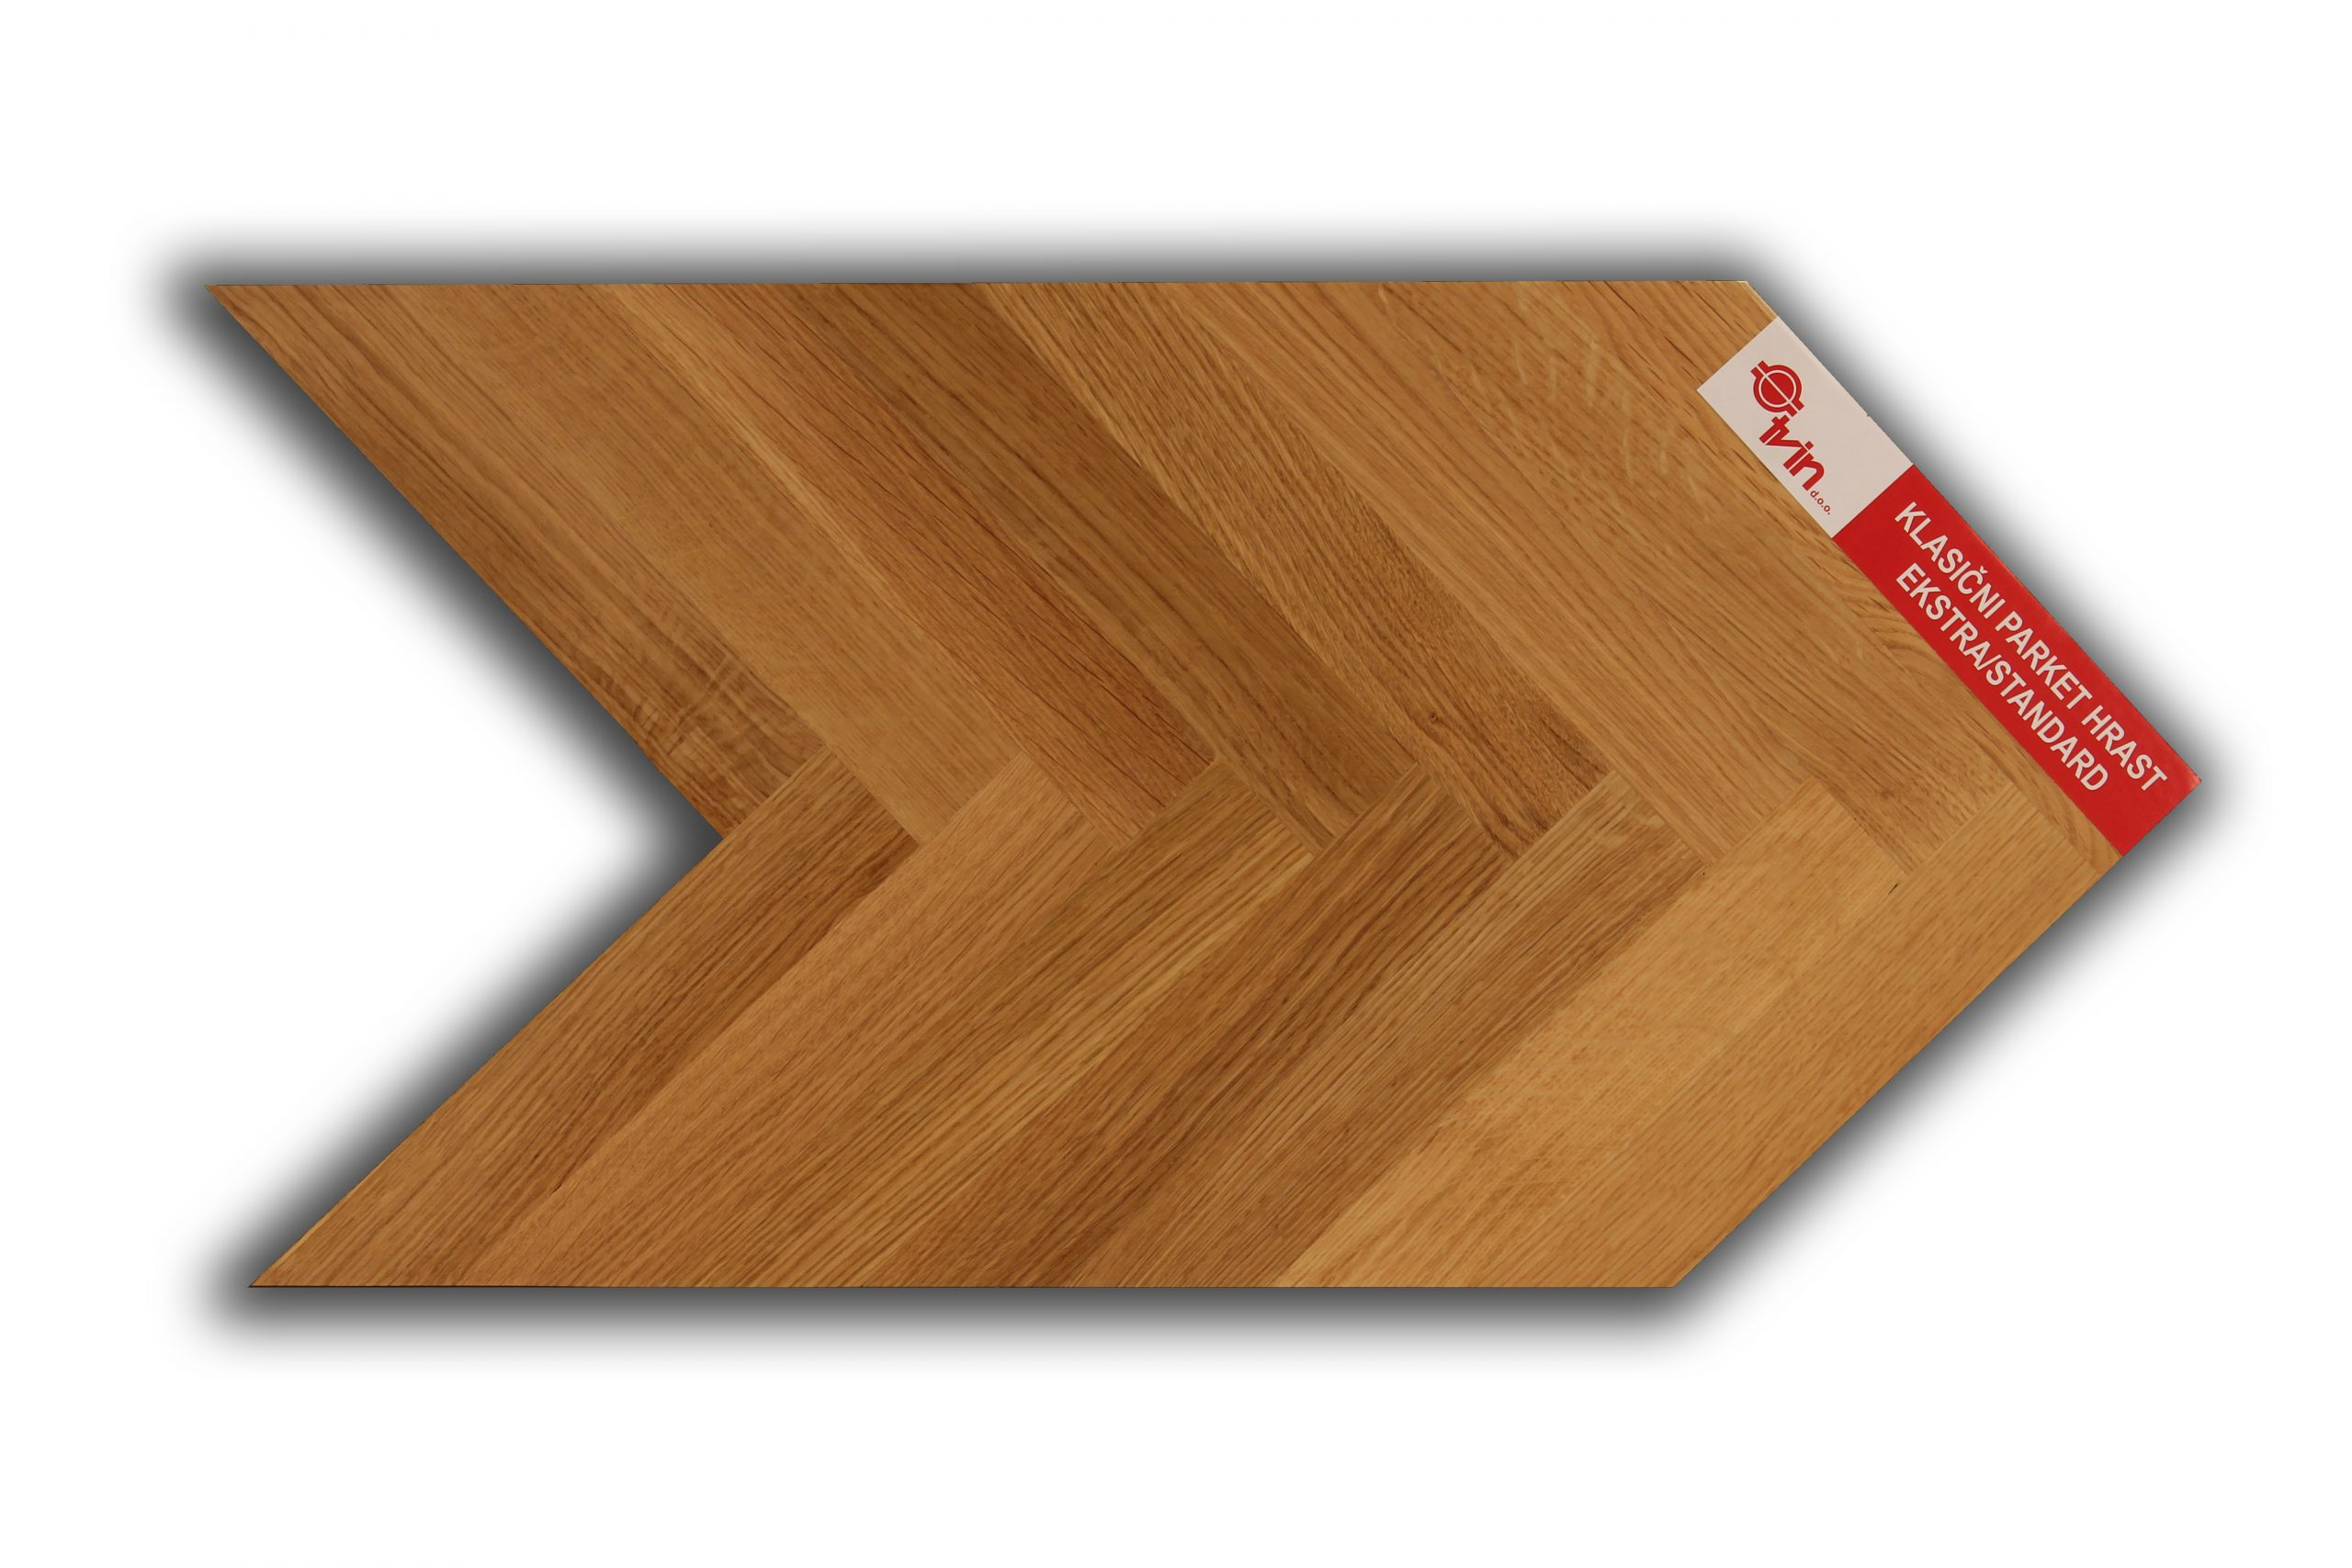 Tvin Solid wood parquet